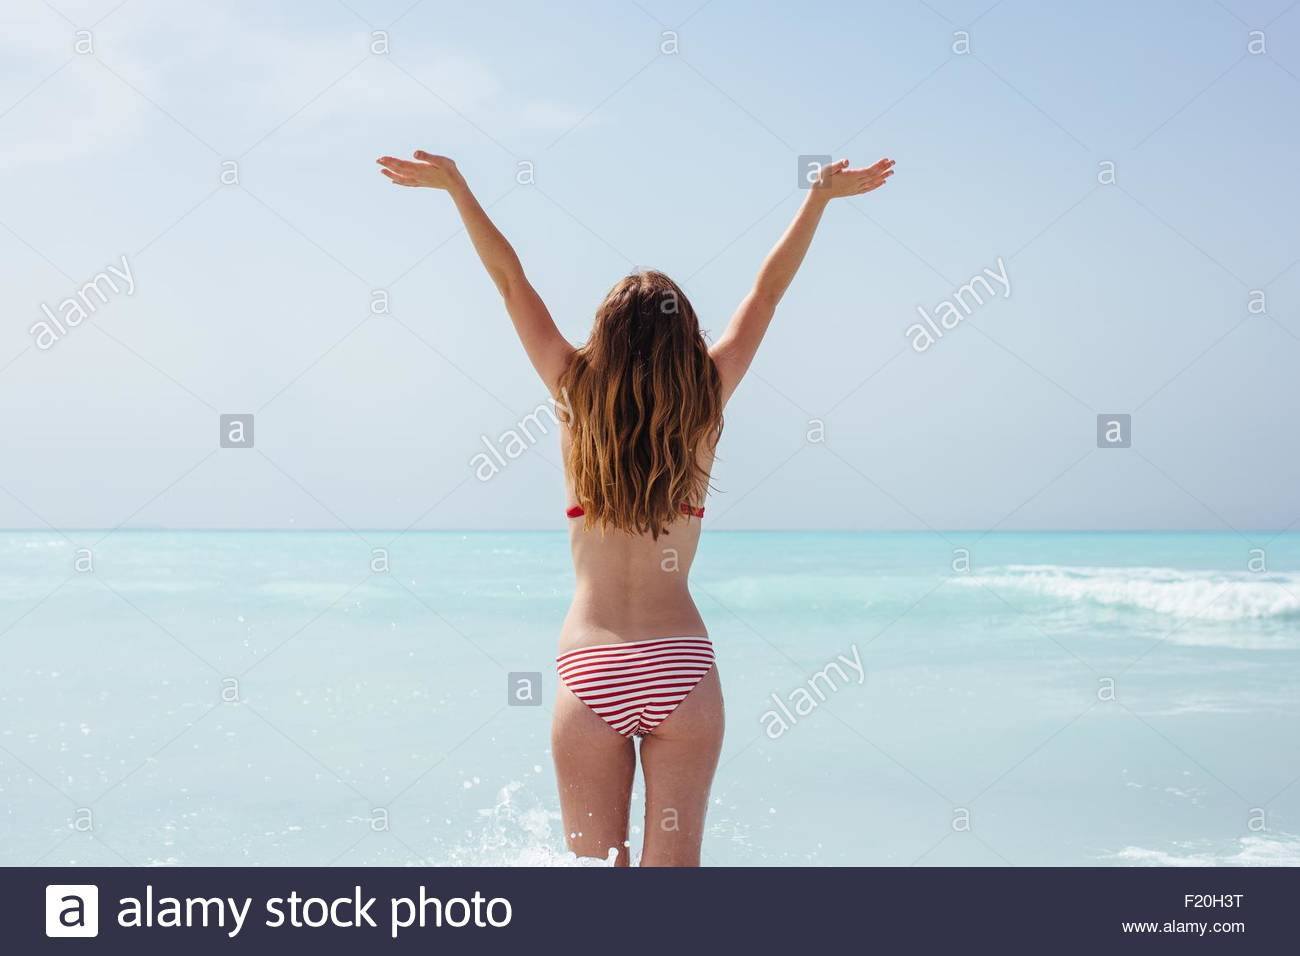 Rear view of young woman wearing bikini with arms raised in sea - Stock Image